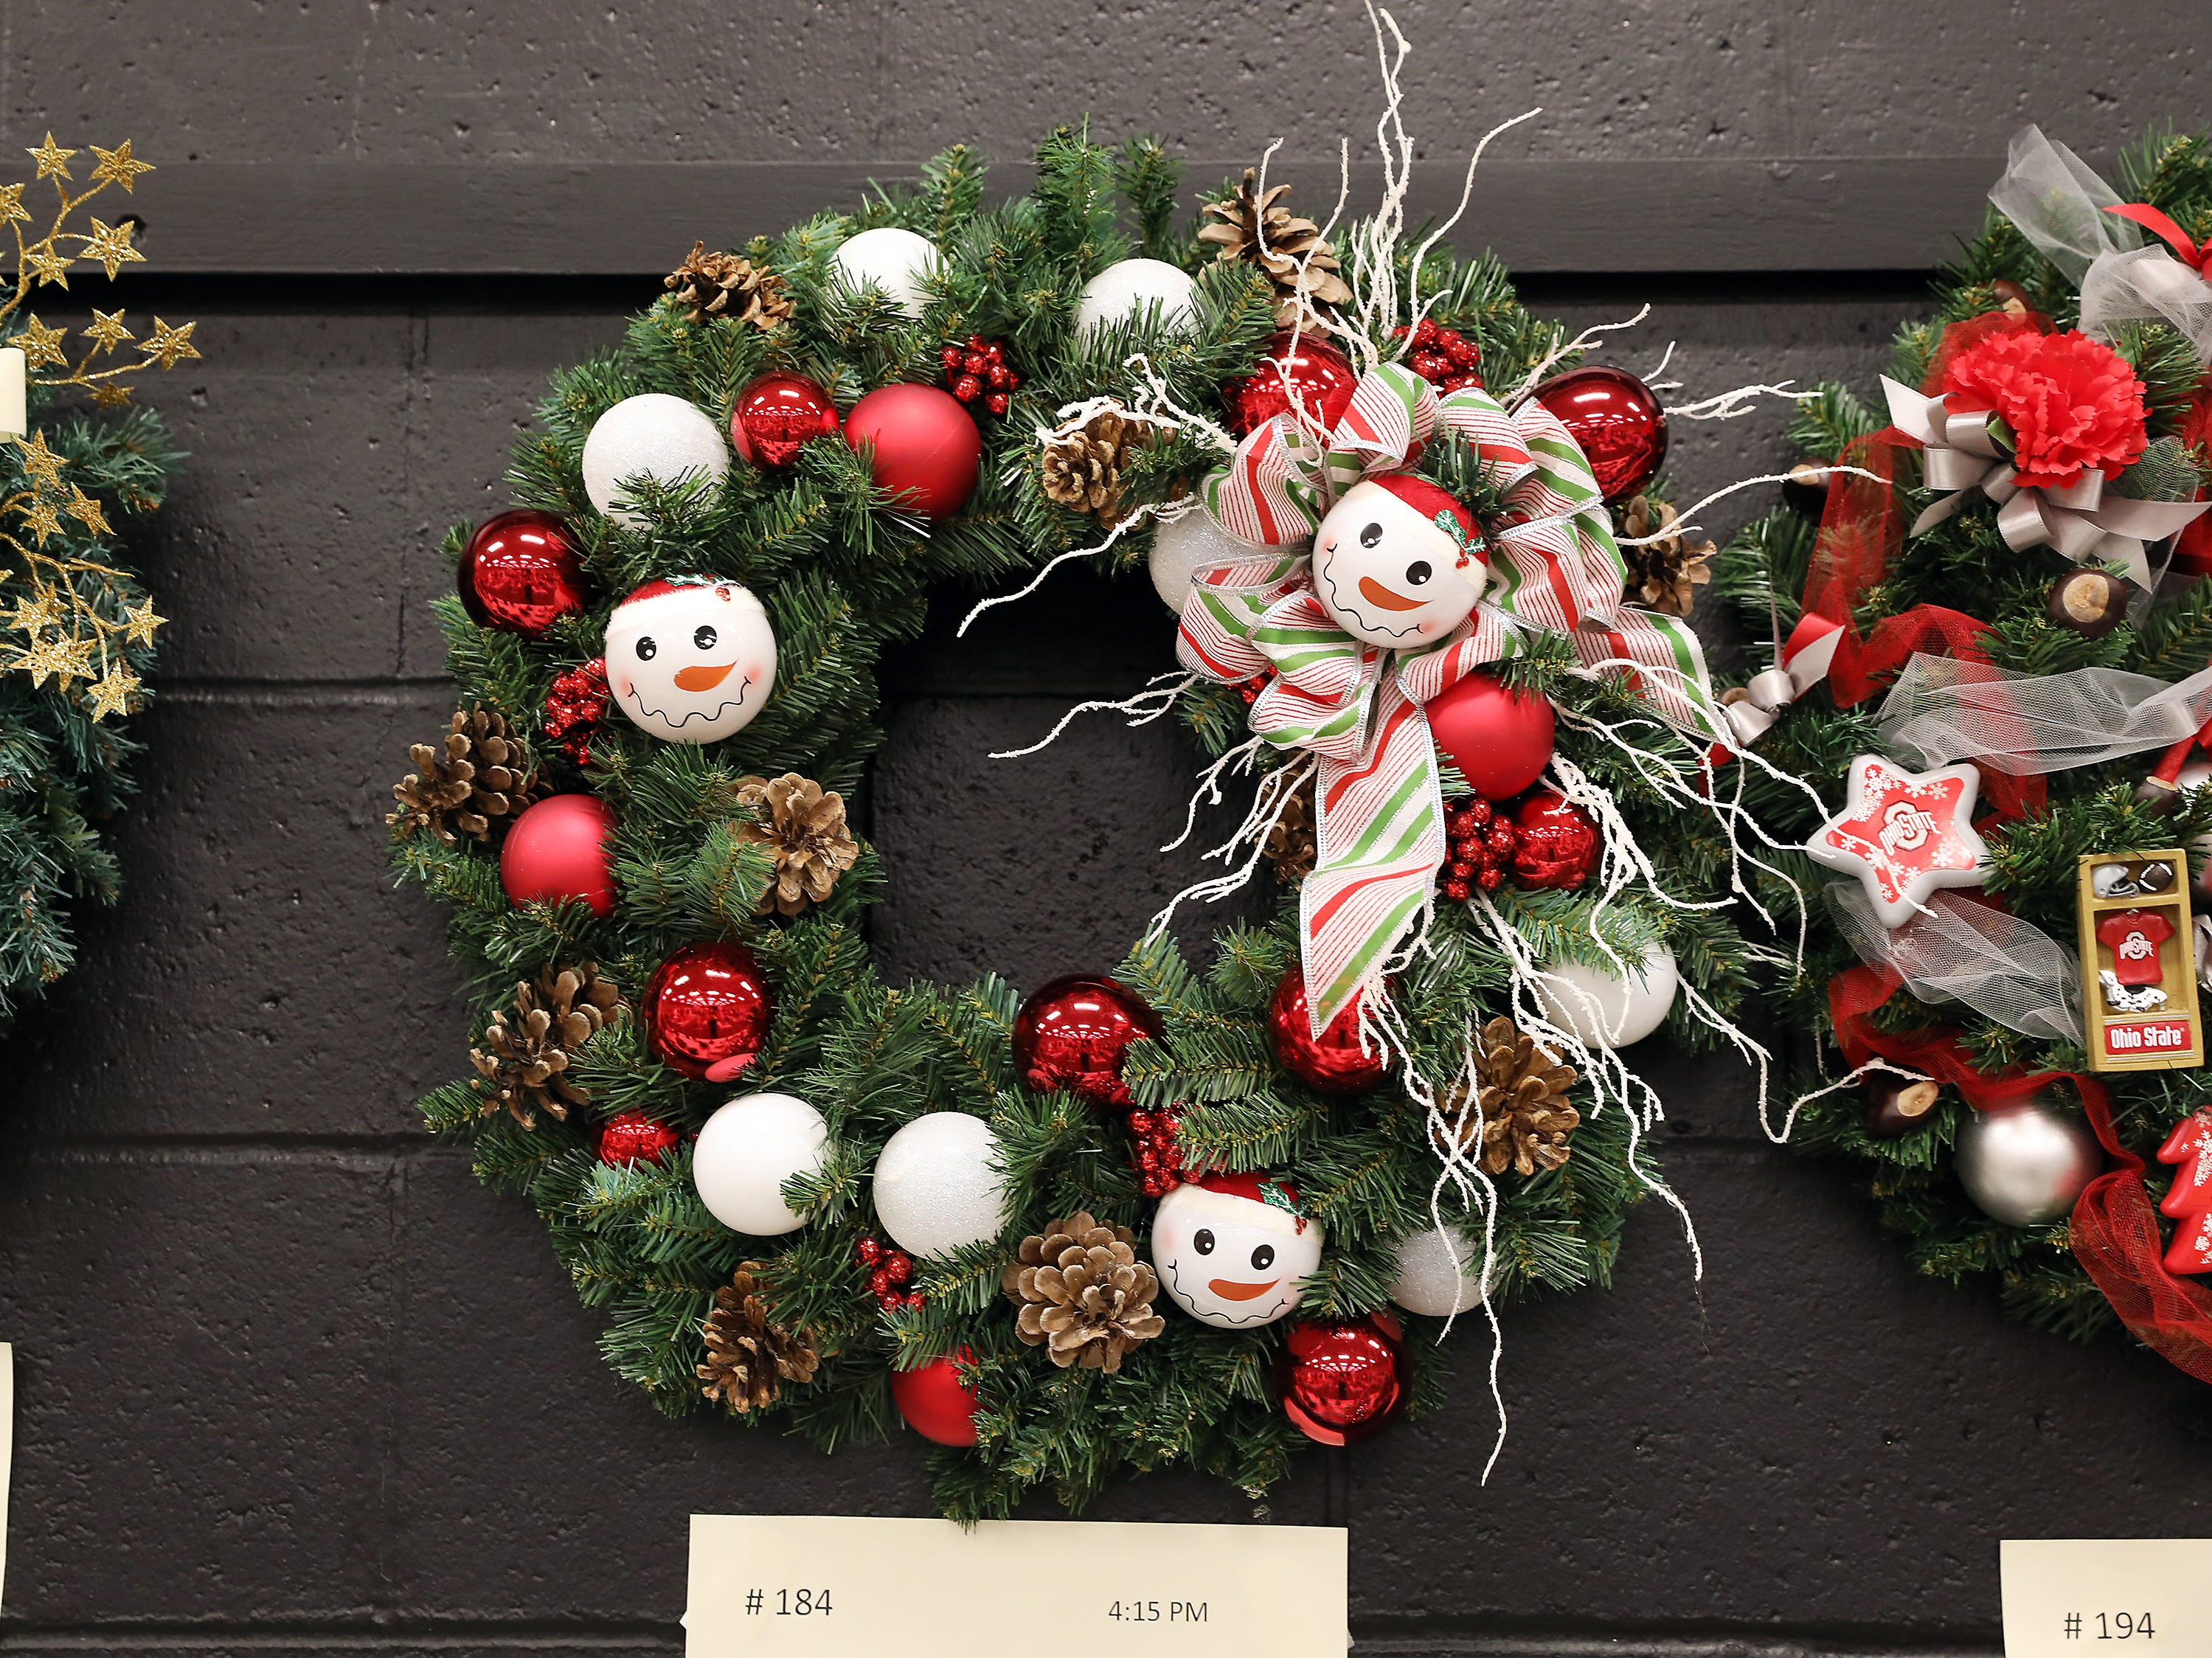 "184	4:15 PM	Italian Eatery Picnic Pizza	Wreath	Snowball Fun!	18"" Christmas pine wreath decorated with white, red, snowmen bulbs, pine cones, winter branches and ribbon.		1 large, 1 item pizza per month for the year of 2019."